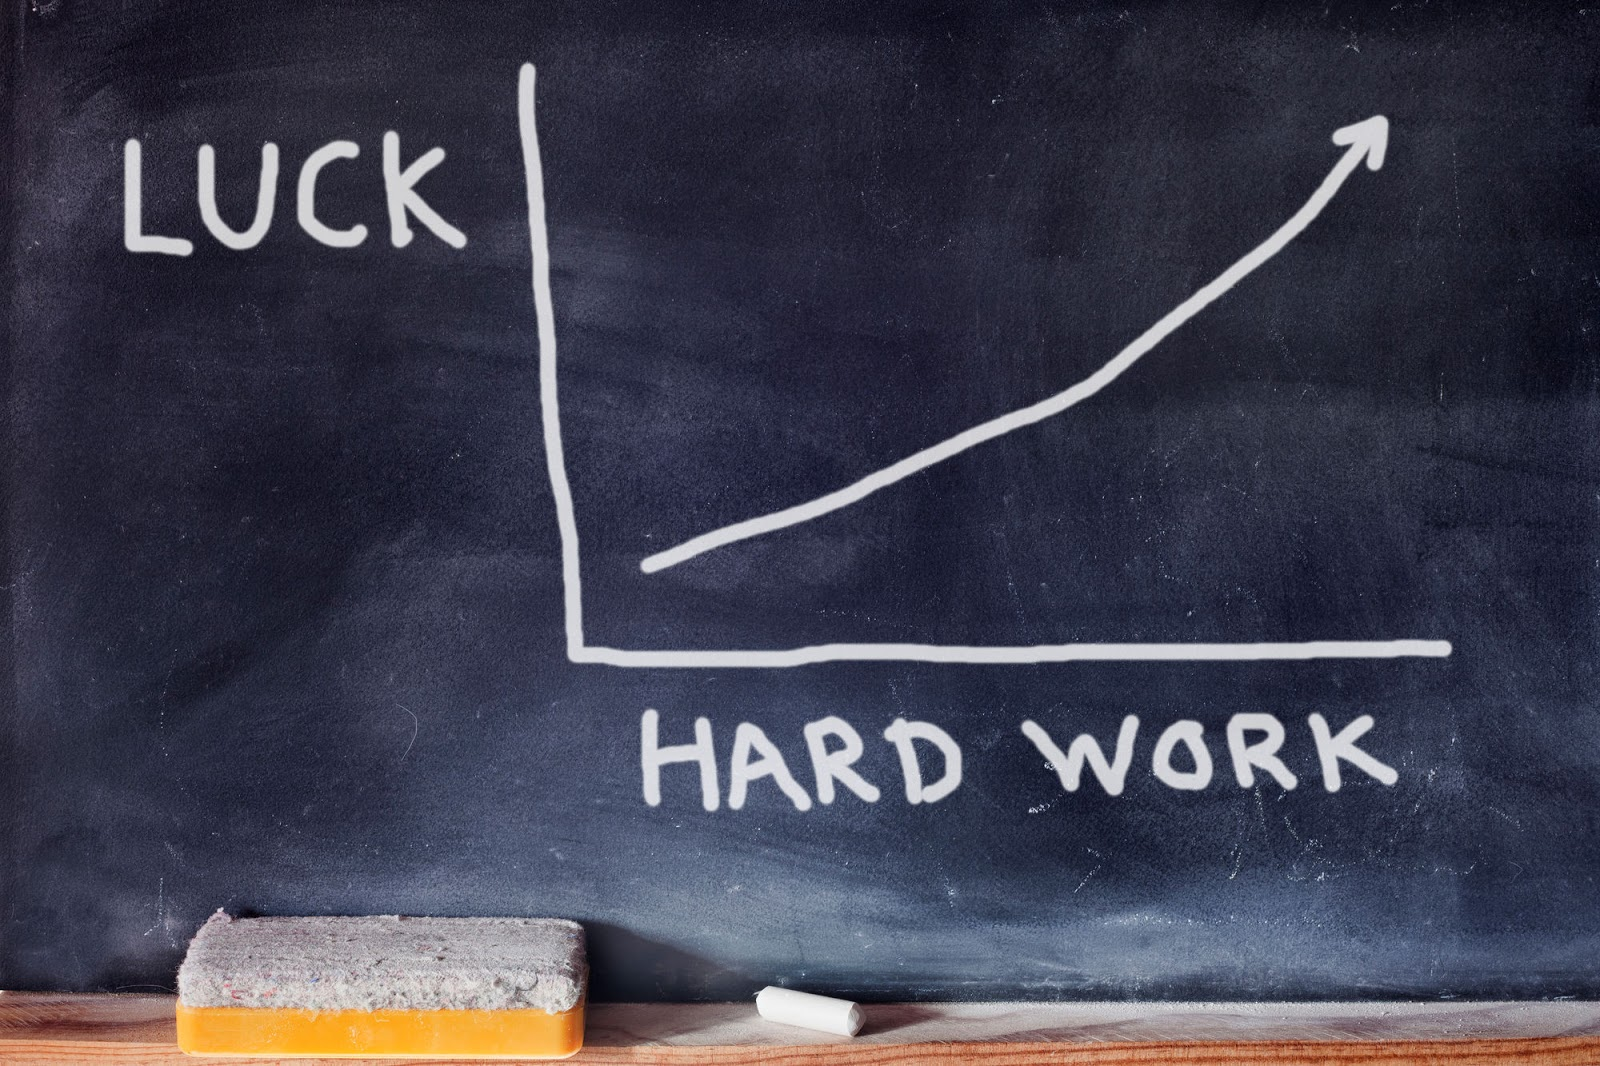 Luck Vs Hard Work Quotes: Family Finance Favs: Teach Kids The Relationship Between